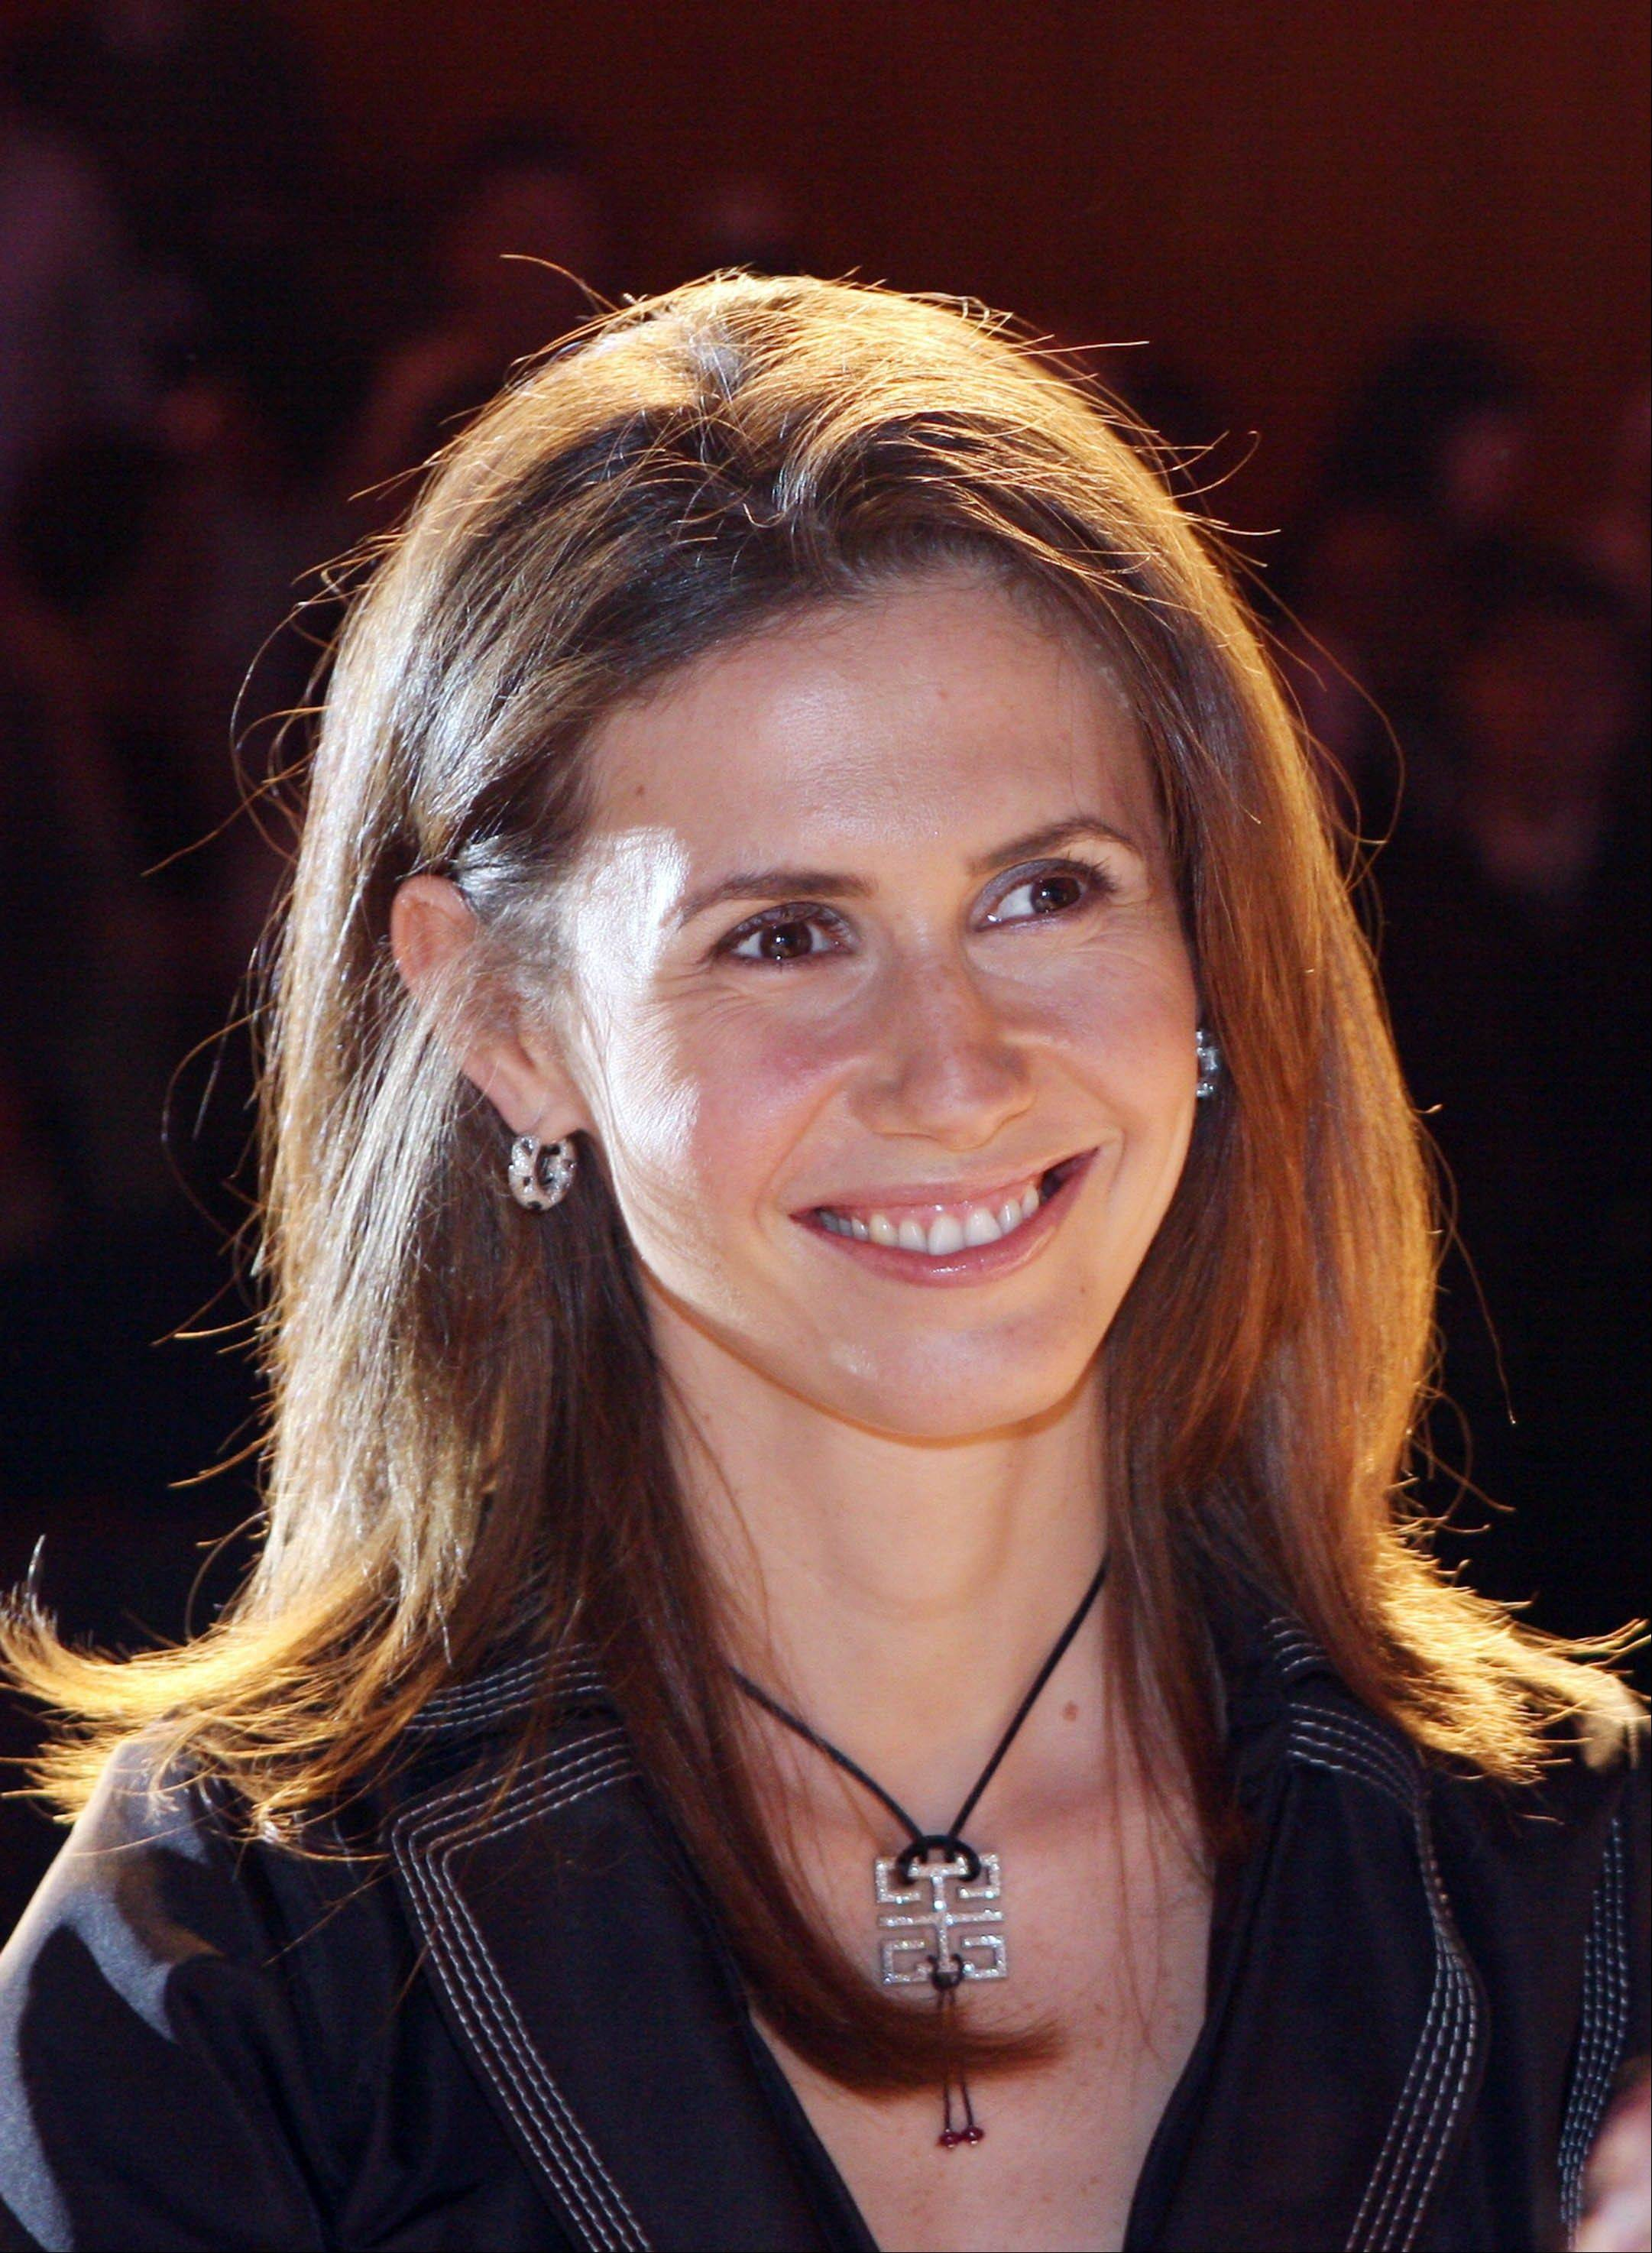 Asma Assad, the wife of Syrian President Bashar Assad, poses for the camera on in this May 20, 2007 file photo. An EU official said Thursday March 23, 2012, a total of four members of the Assad family, along with eight government ministers, will be targeted in the latest round of sanctions aimed at stopping the violent crackdown on members of the Syrian opposition.